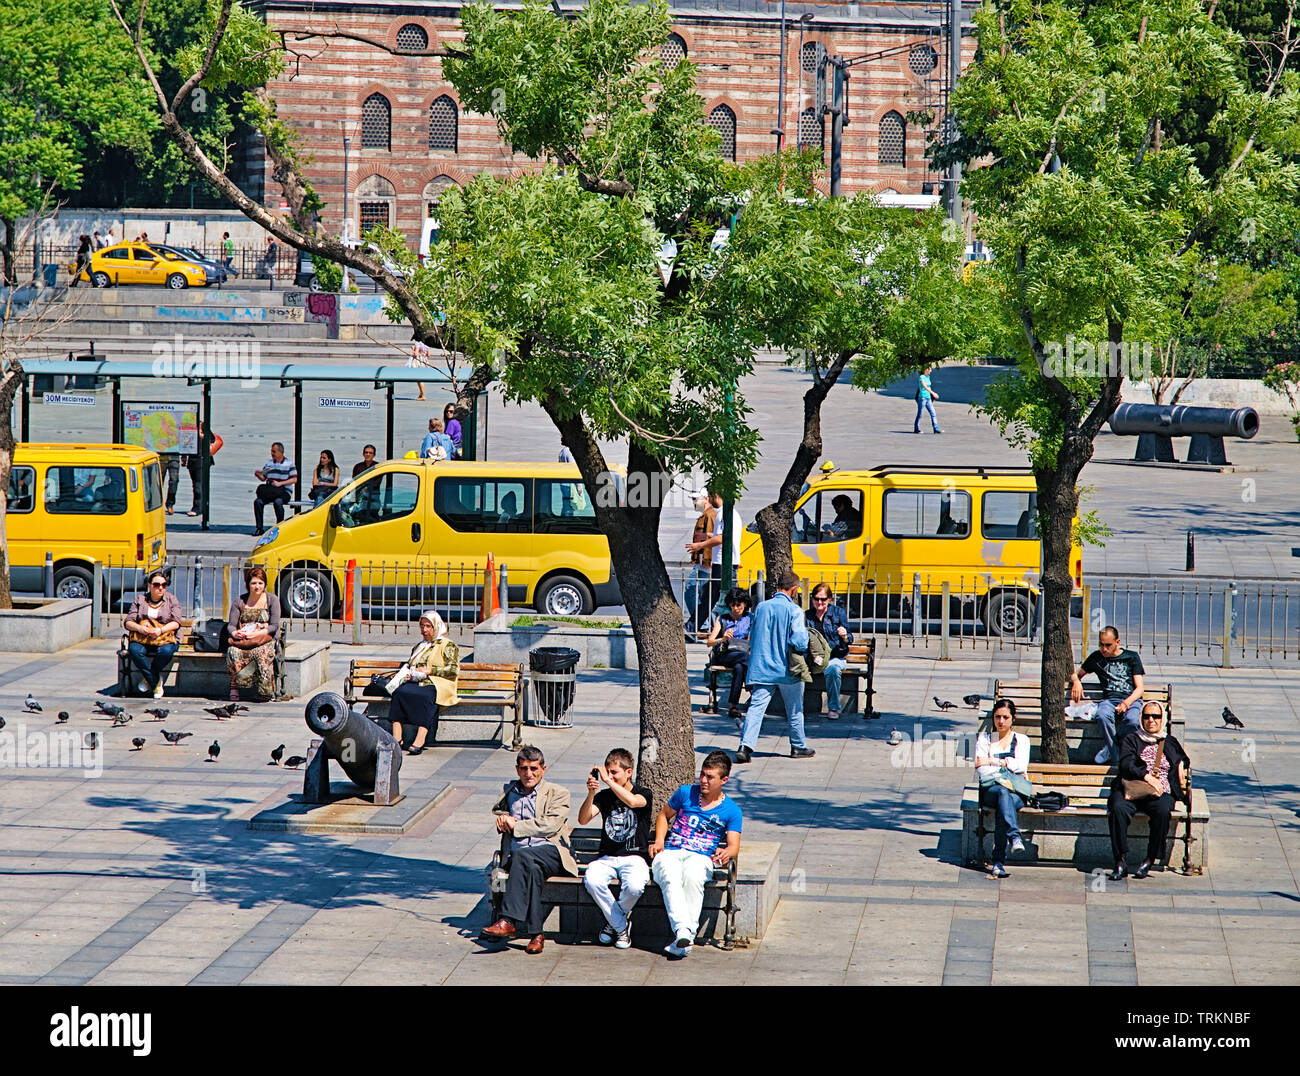 Istanbul, Turkey - 05/26/2010: People sitting on benches at bosporus strait coast, yellow taxis trees, canons replicas, sunny day. Stock Photo